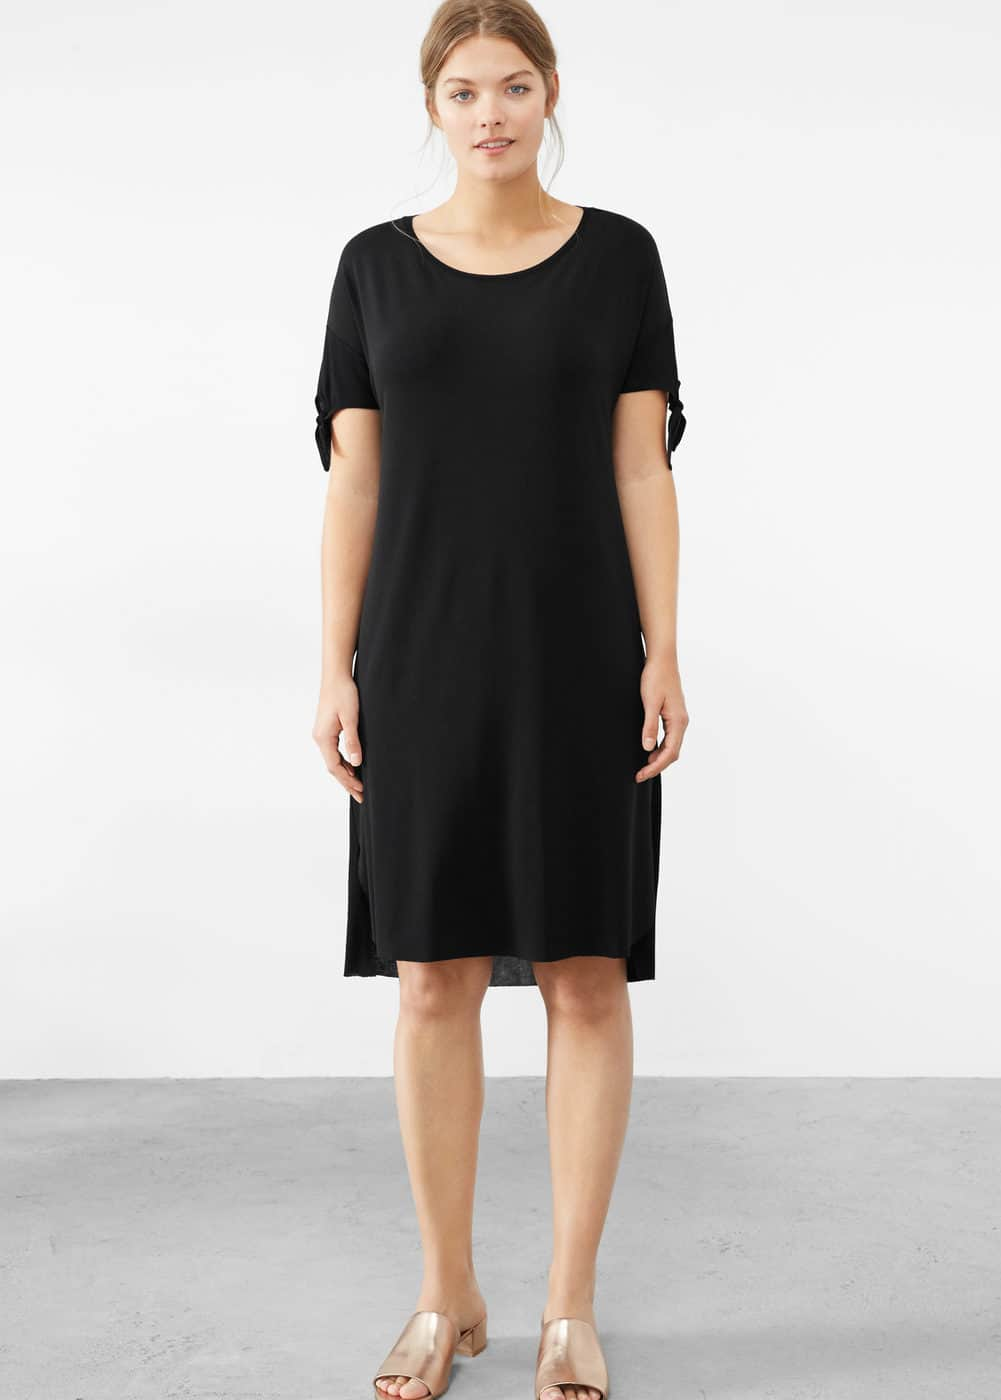 Knot detail contrast dress | VIOLETA BY MANGO